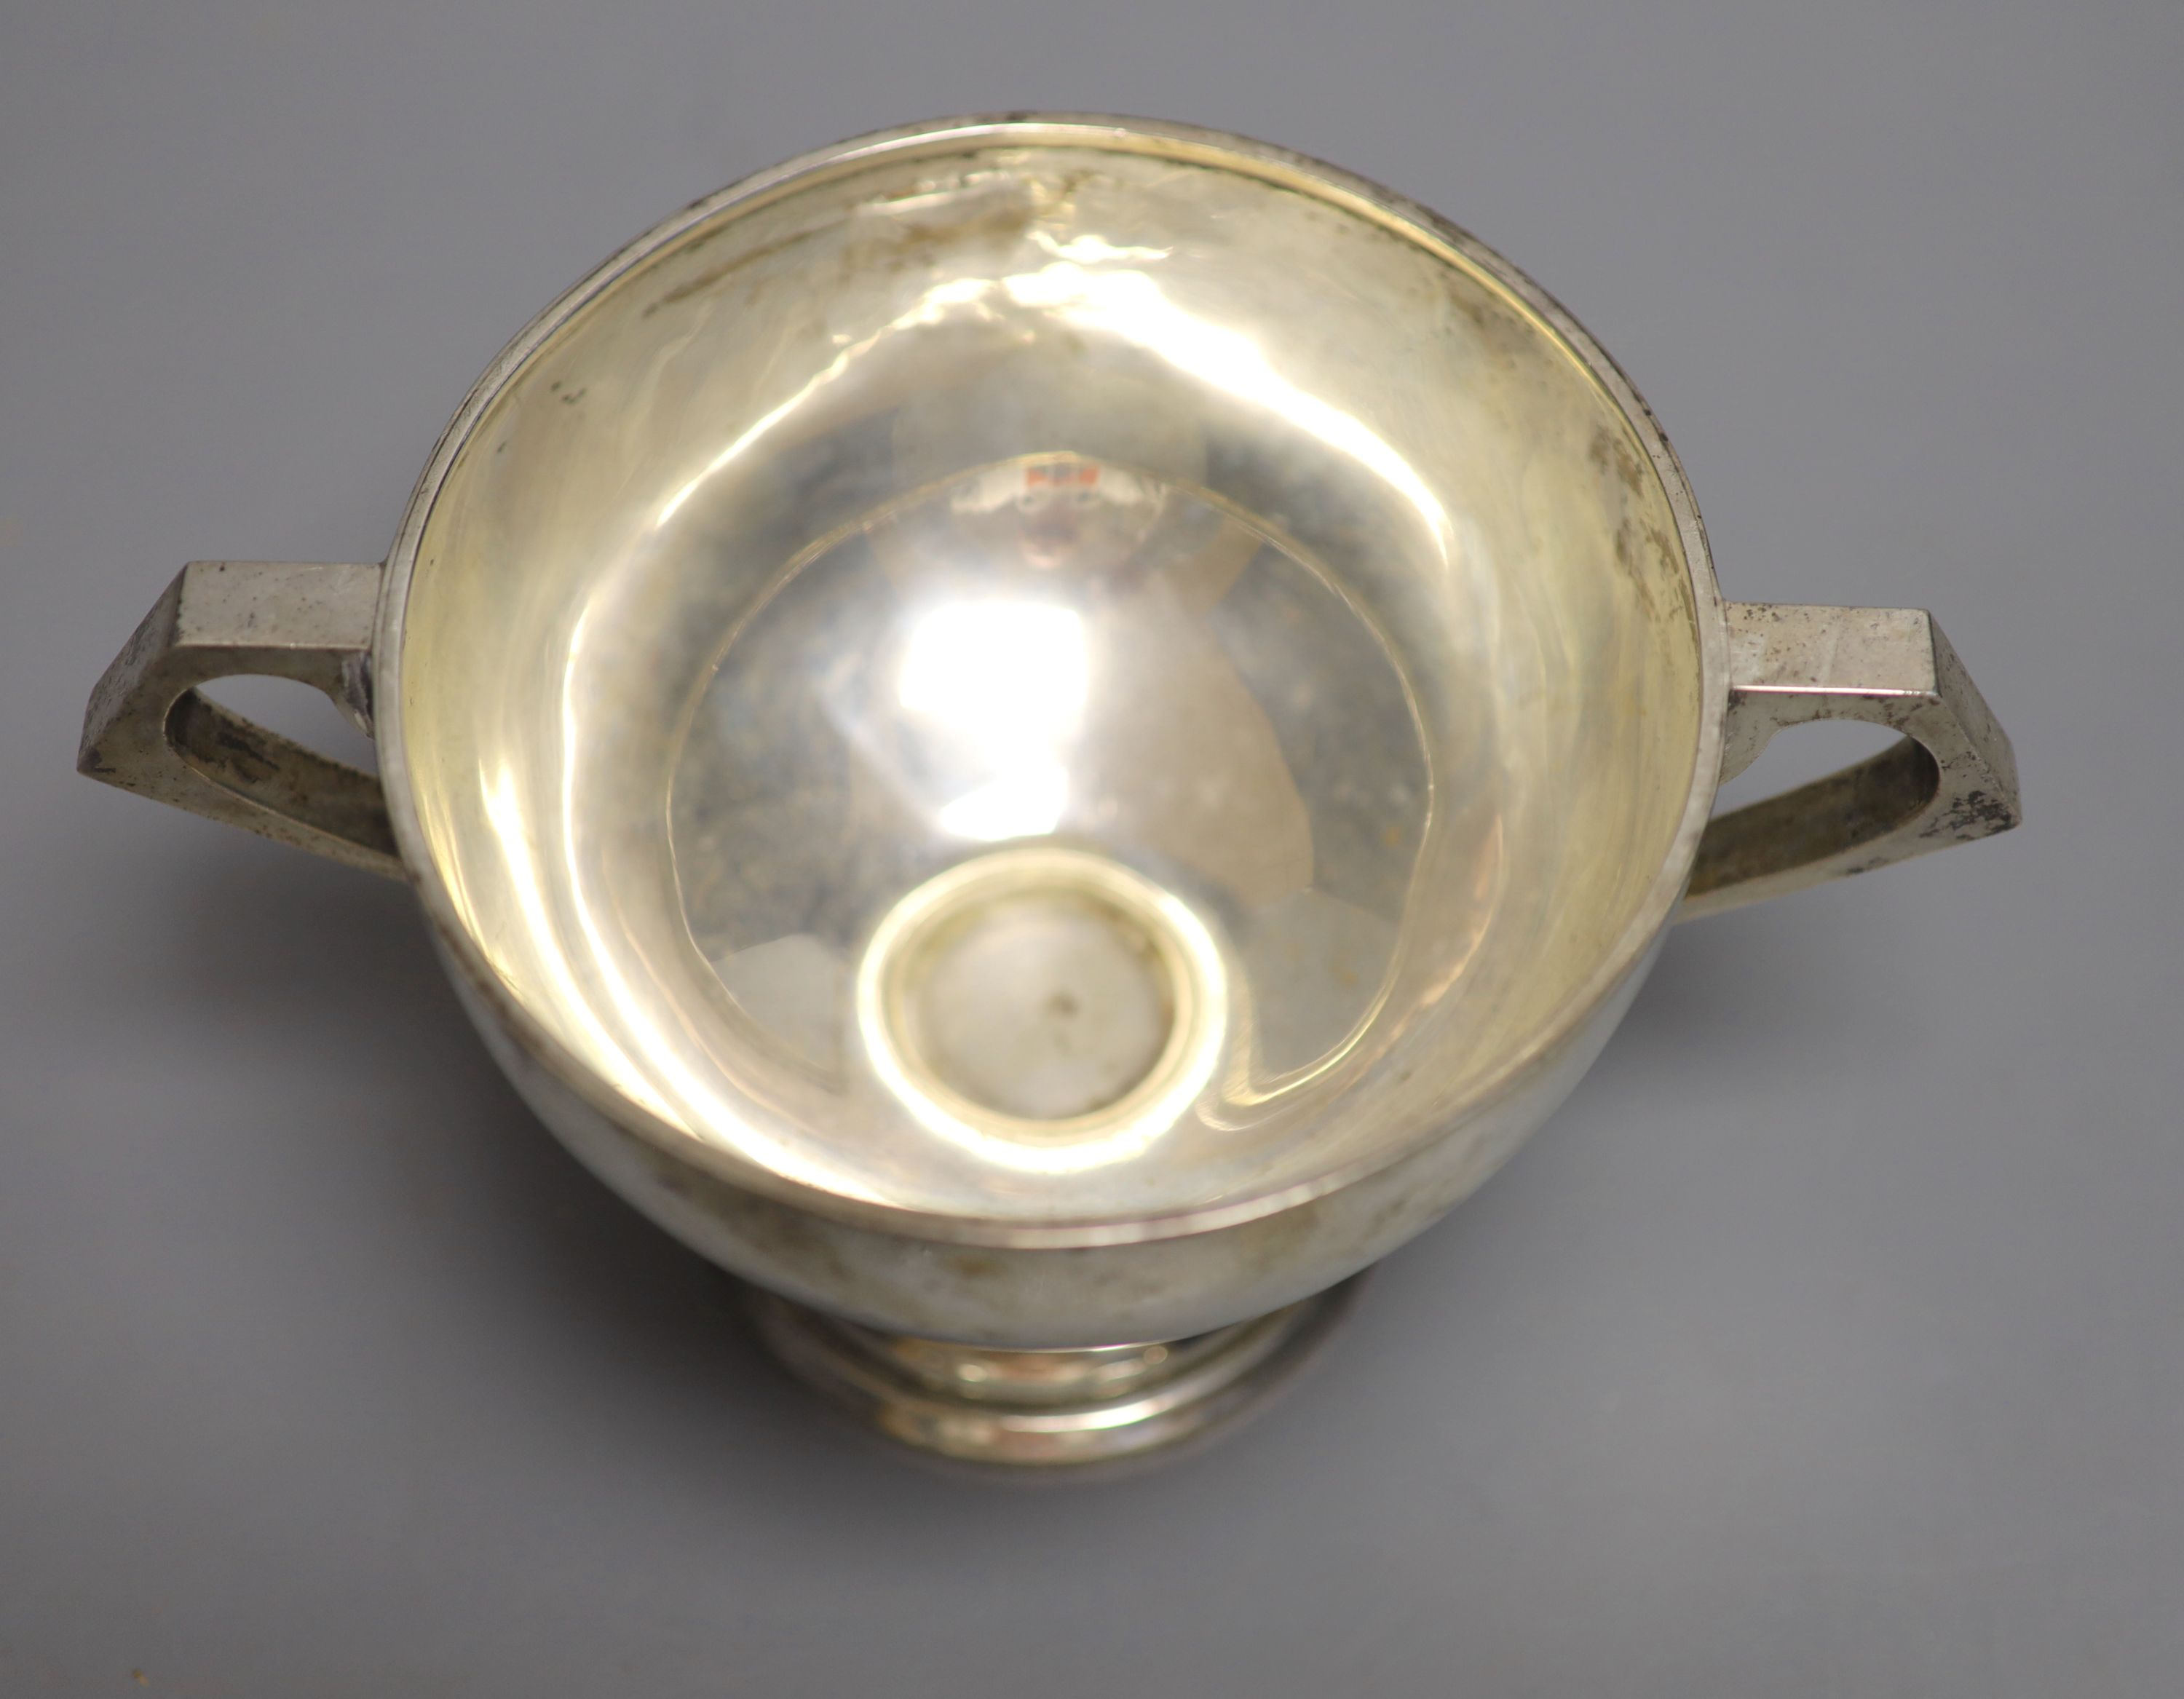 An Anglo-Indian silver two-handled pedestal rose bowl, marked C & K (Cooke & Kelvey), snake and SIL, - Image 2 of 3